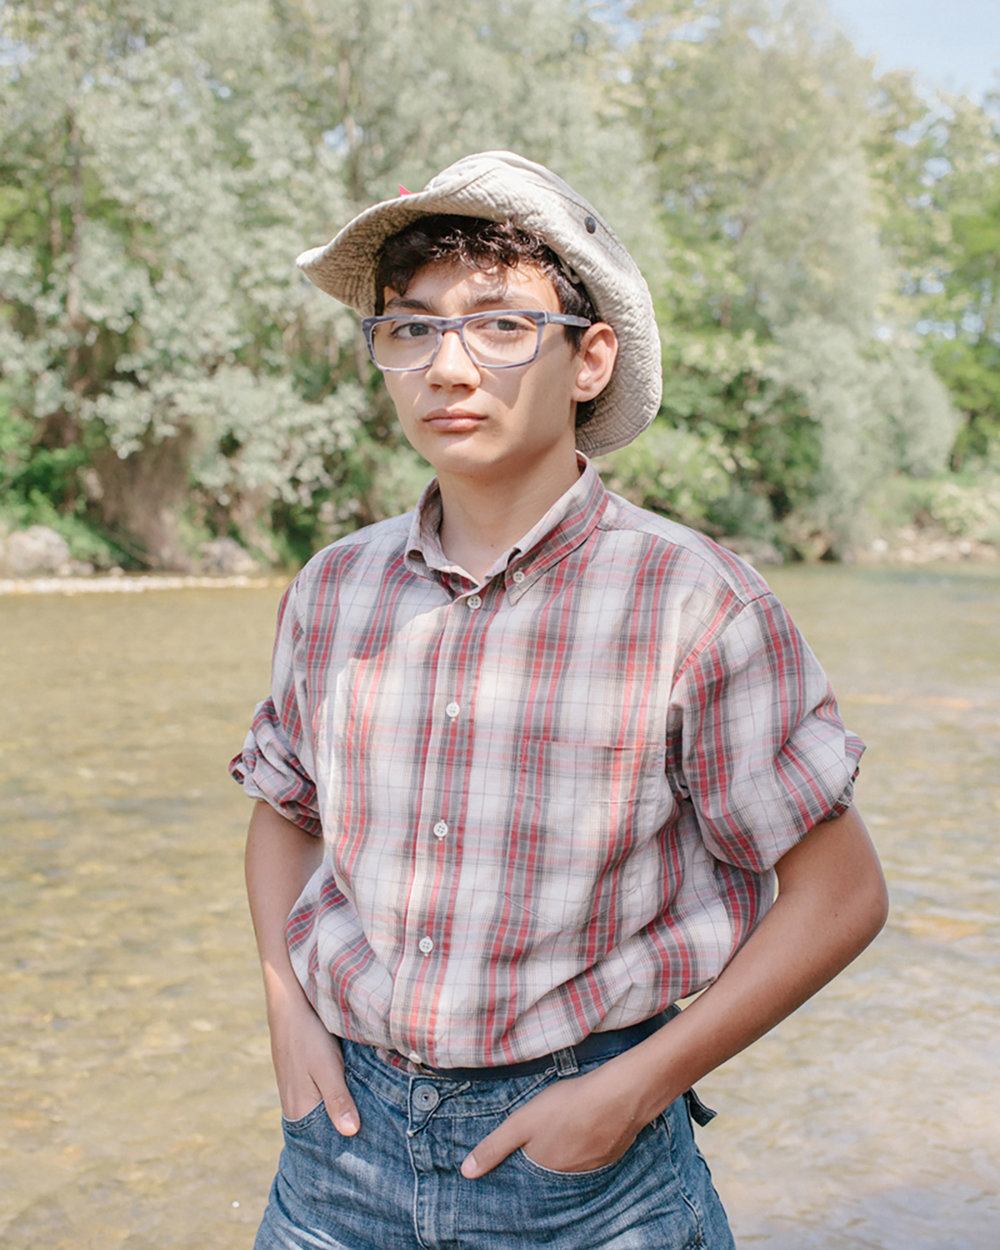 Riccardo Silvestri, 12 years old is one of the youngest gold prospector in the north of Italy. He spends almost every weekends with his dad looking for gold in the Elvo, a well known creek among gold panning lovers near Turin.